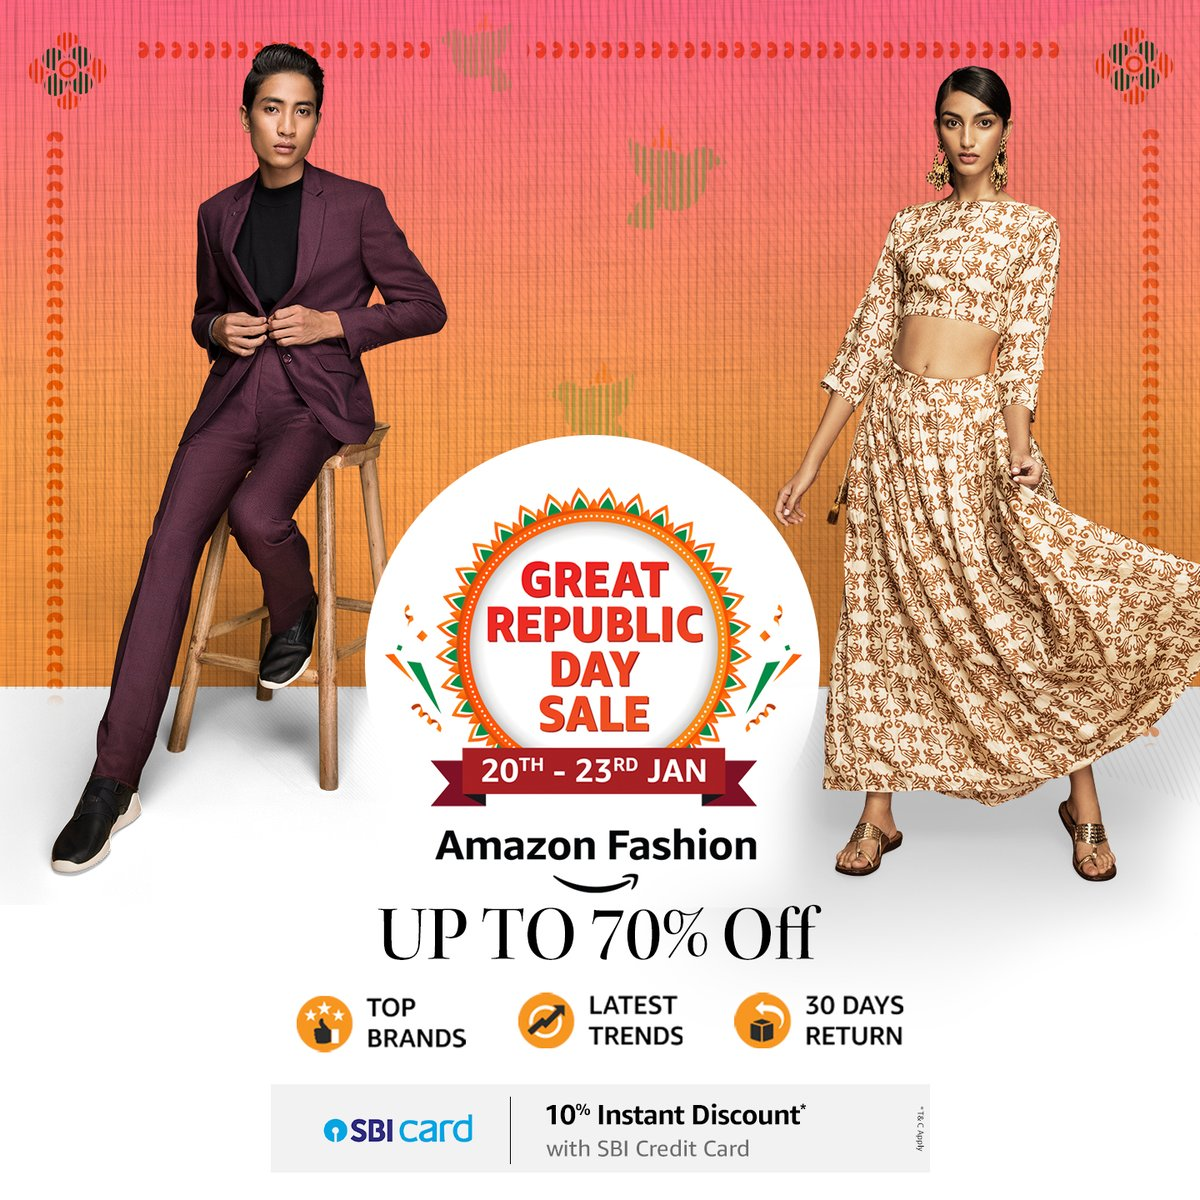 Citizens of Style, the #AmazonGreatRepublicDaySale is finally live. Check out the trendiest styles & latest brands on sale only on #AmazonFashion, all at up to 70% off:   #NewBeginningBigSavings #Sale #AmazonFashion #AmazonBeauty #HarPalFashionable